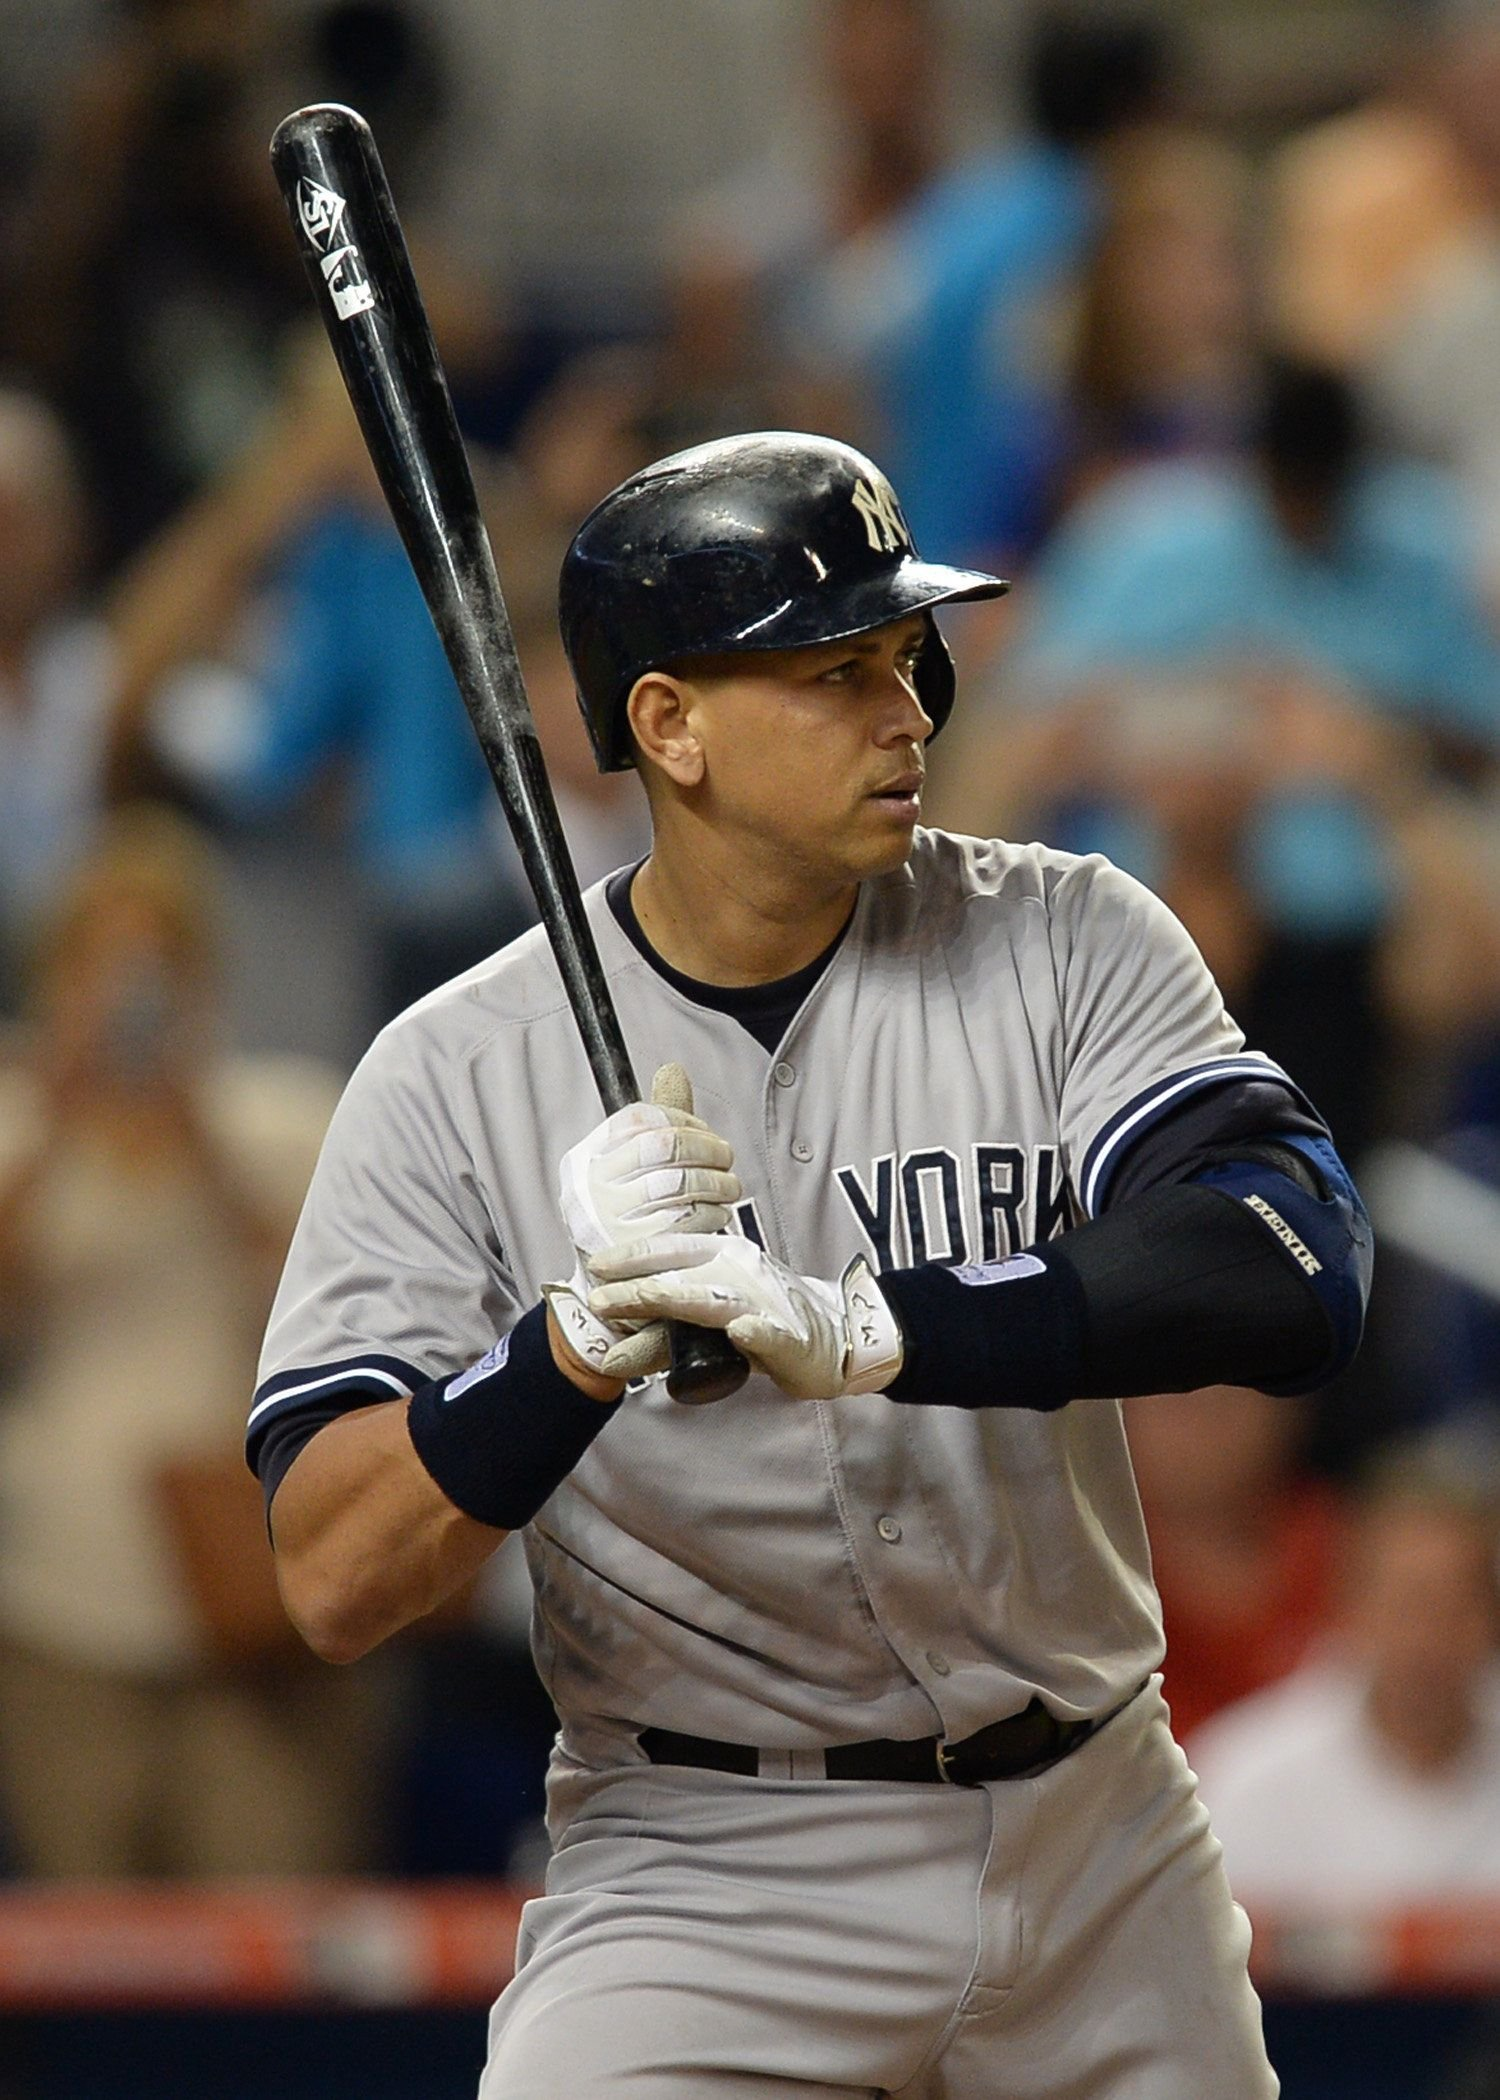 Alex Rodriguez at a game between the Miami Marlins and the New York Yankees on June 15, 2015, in New York | Photo: JC/Icon Sportswire/Corbis/Icon Sportswire/Getty Images